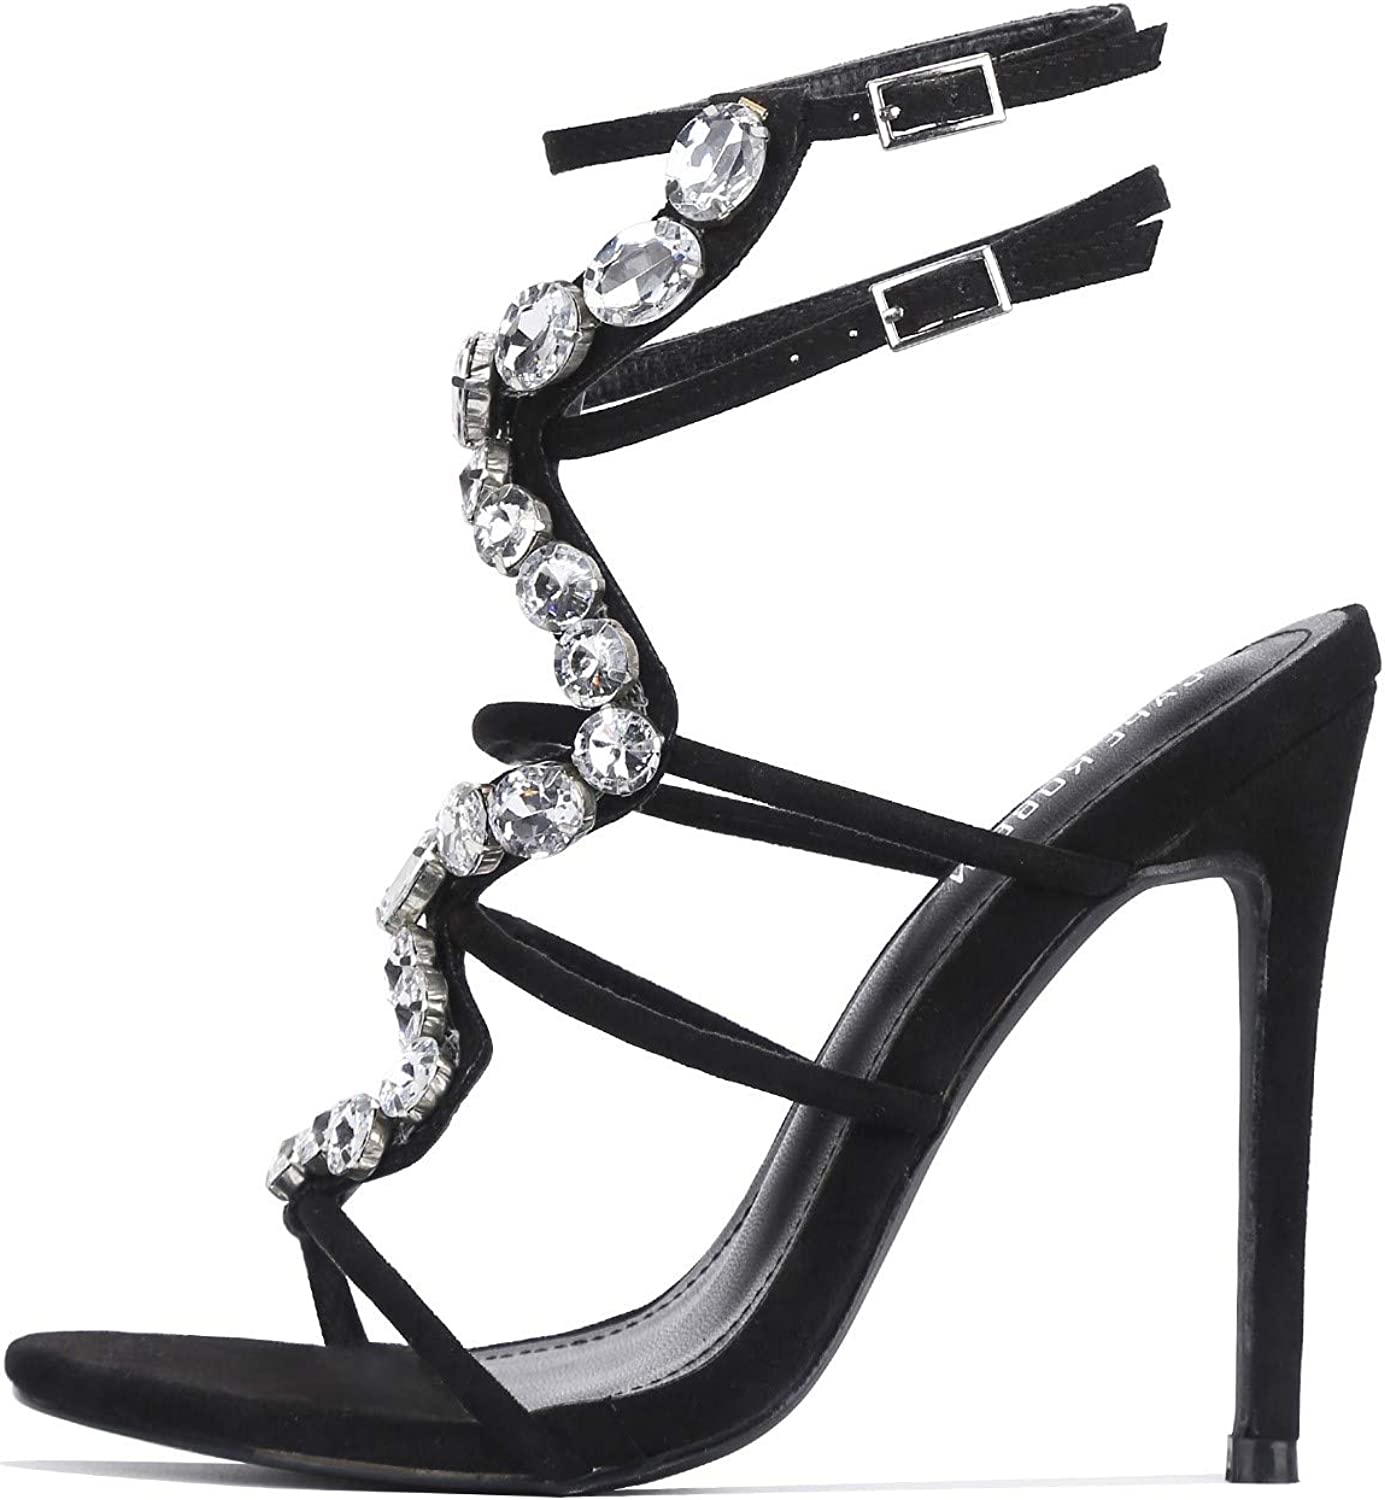 Cape Robbin Snake Road Sexy Stiletto High Heels for Women, Strappy Pointed Open Toe Shoes Heels